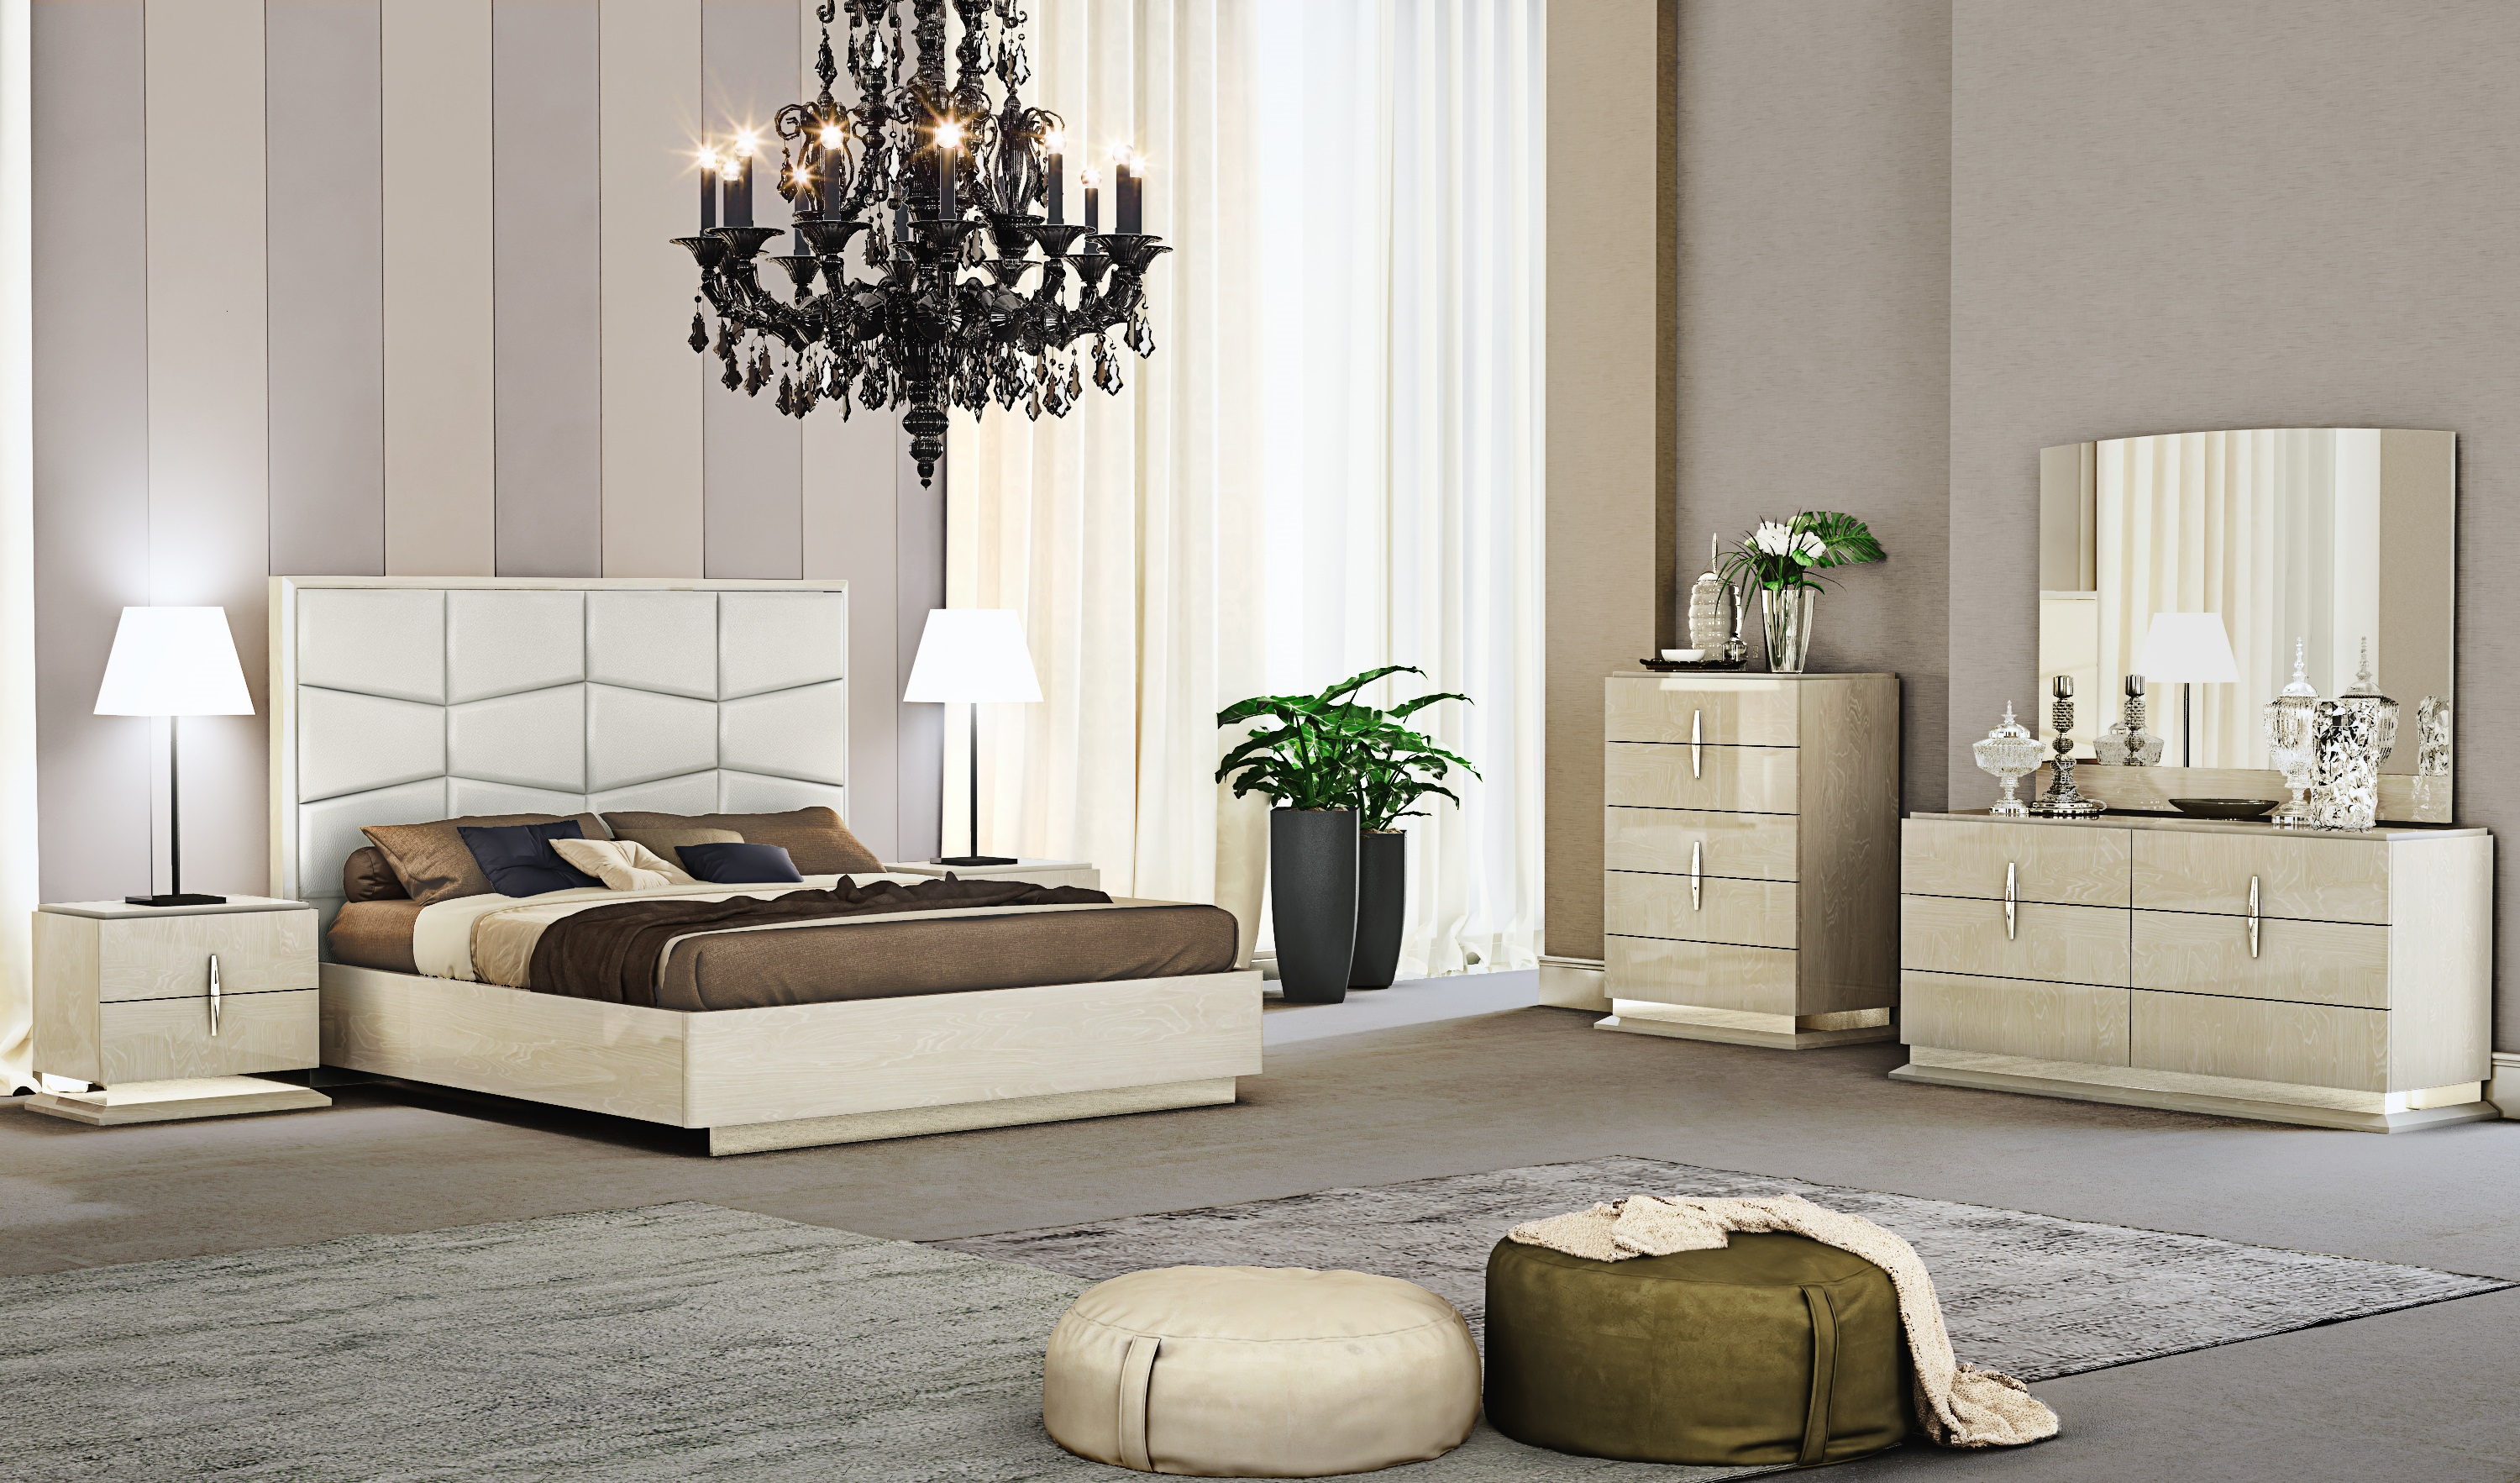 Fashionable Leather Luxury Contemporary Furniture Set intended for 13 Genius Ways How to Build Luxury Modern Bedroom